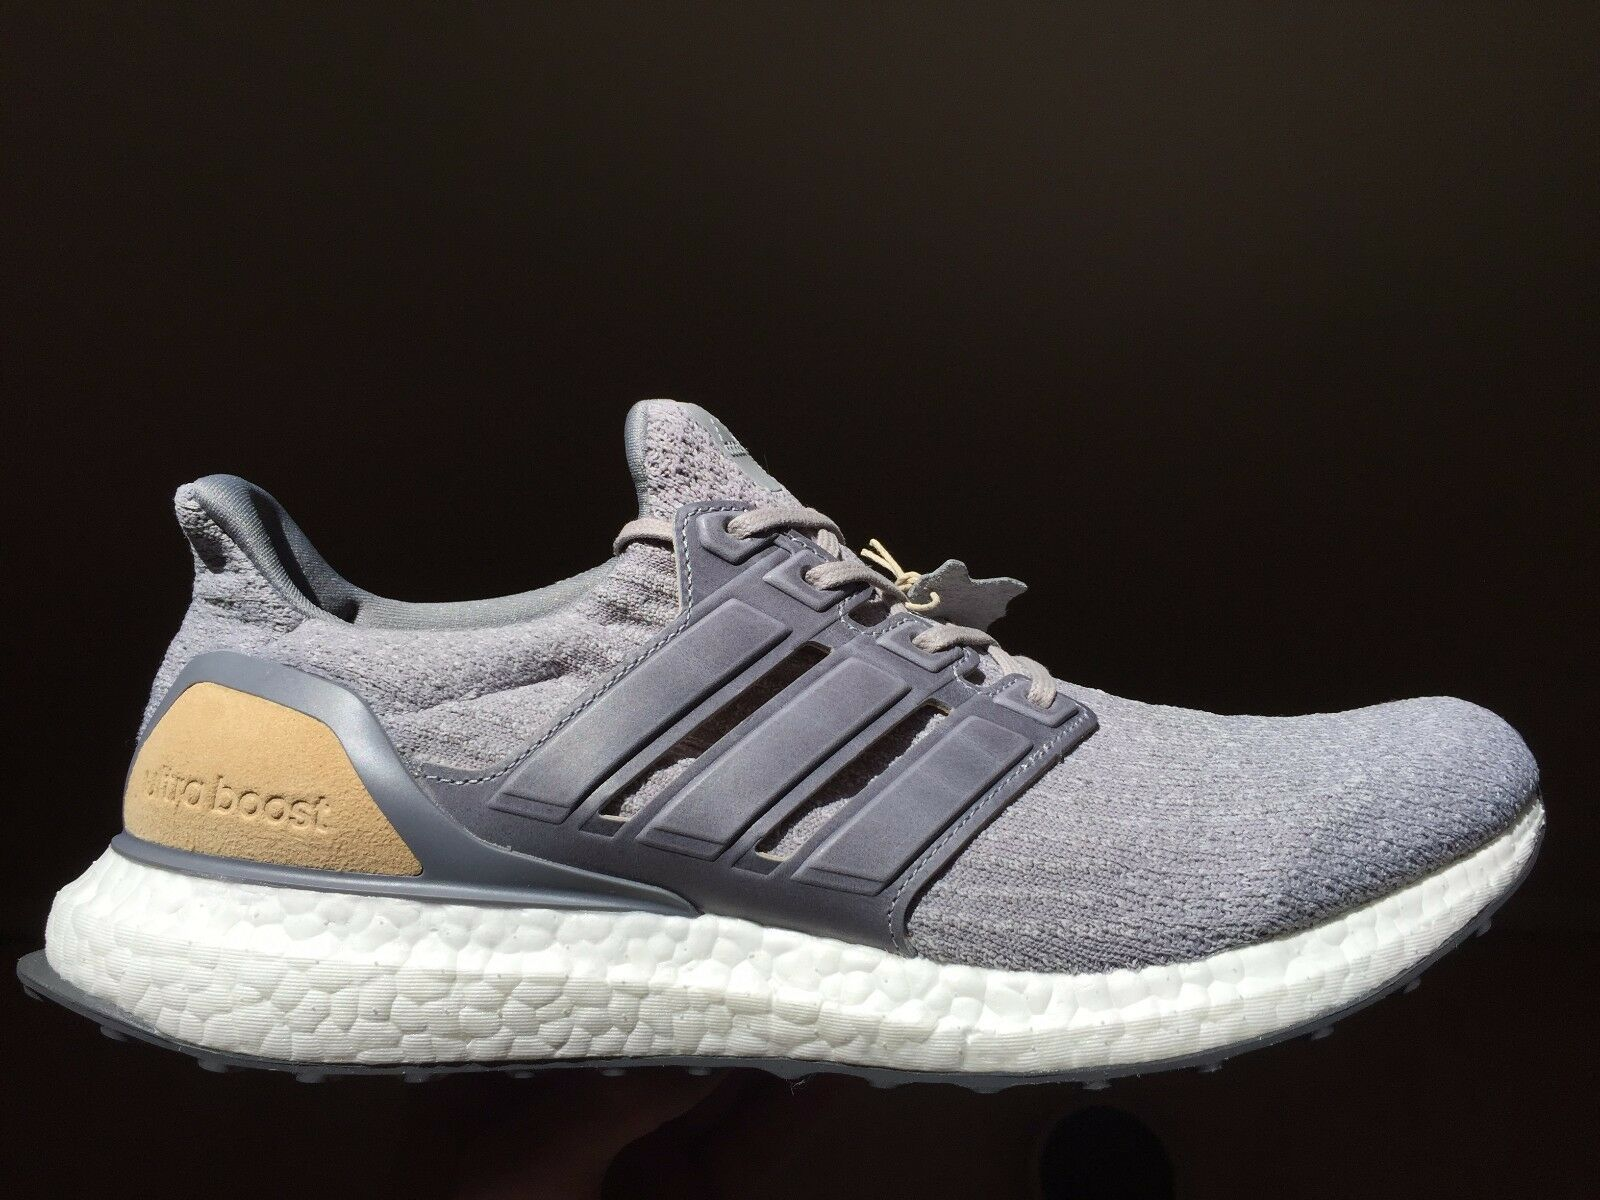 """Adidas Ultra Boost 3.0 LTD  Mid Grey"""" Leather Cage Size 11.5 shoes (BB1092)"""